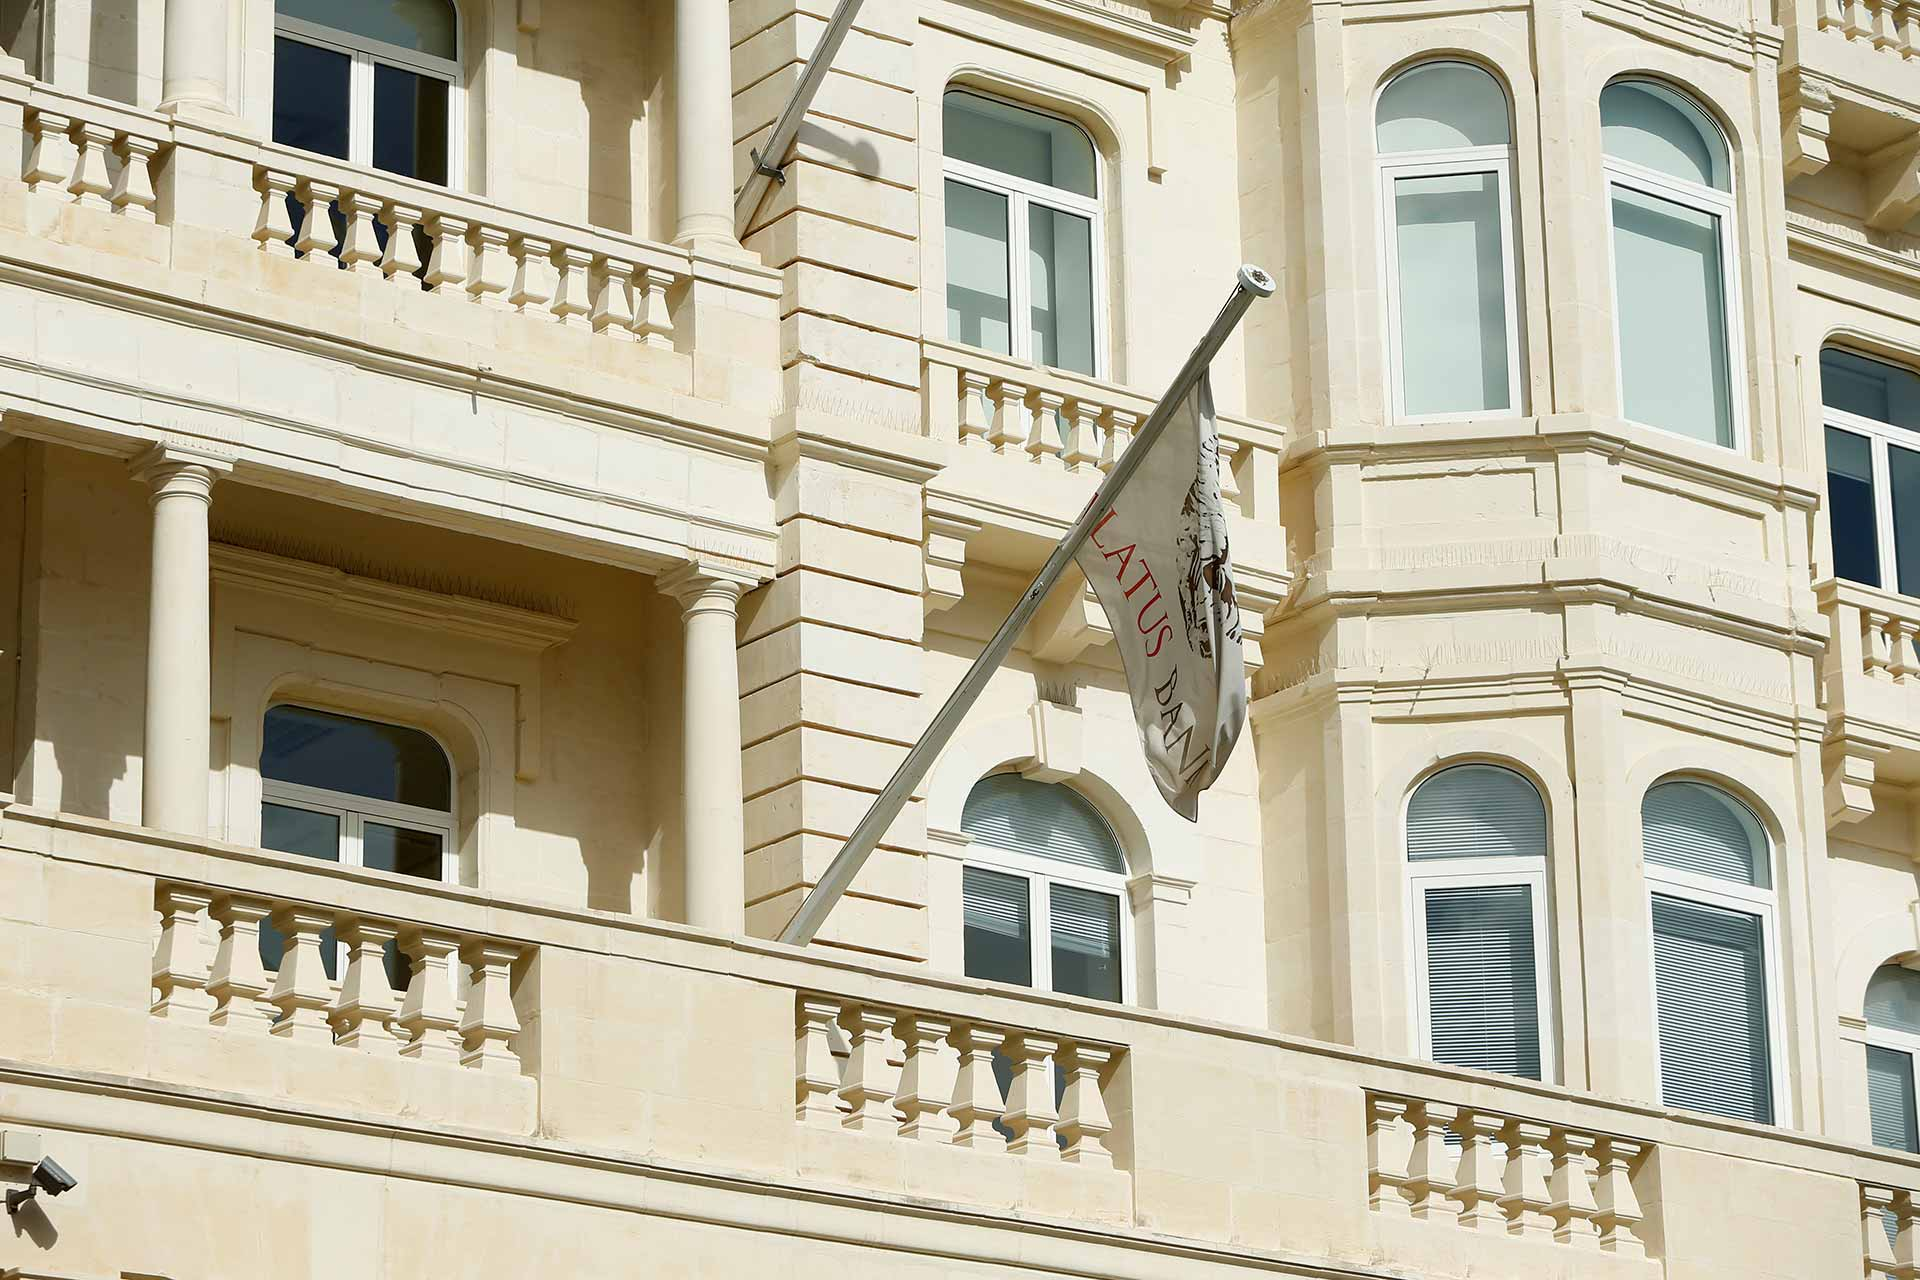 The flag of Pilatus Bank flies from its offices in Whitehall Mansions in Ta' Xbiex, Malta. Photo (c): REUTERS/Darrin Zammit Lupi